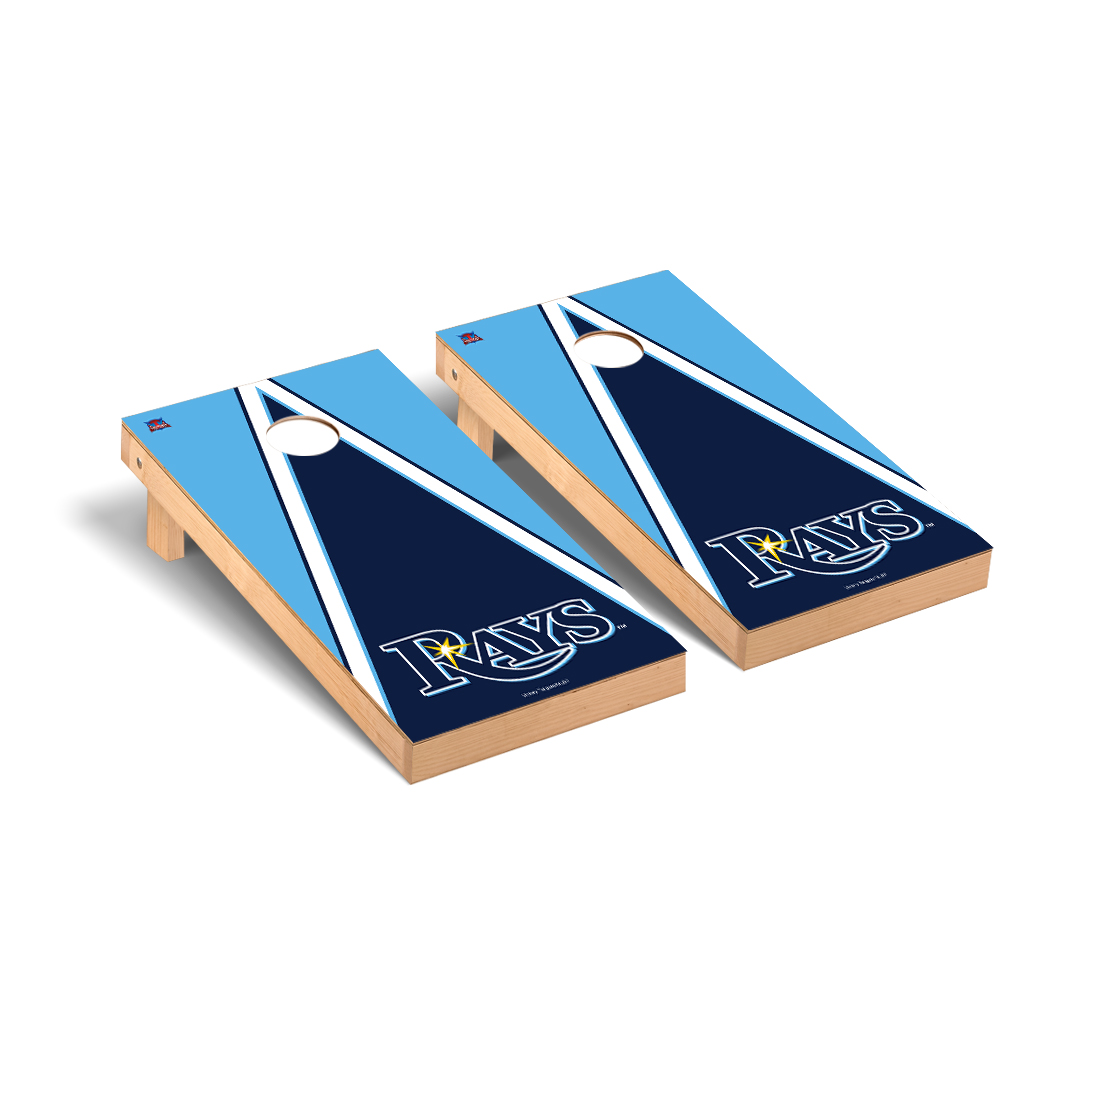 Tampa Bay Rays MLB Baseball Cornhole Game Set Triangle Version